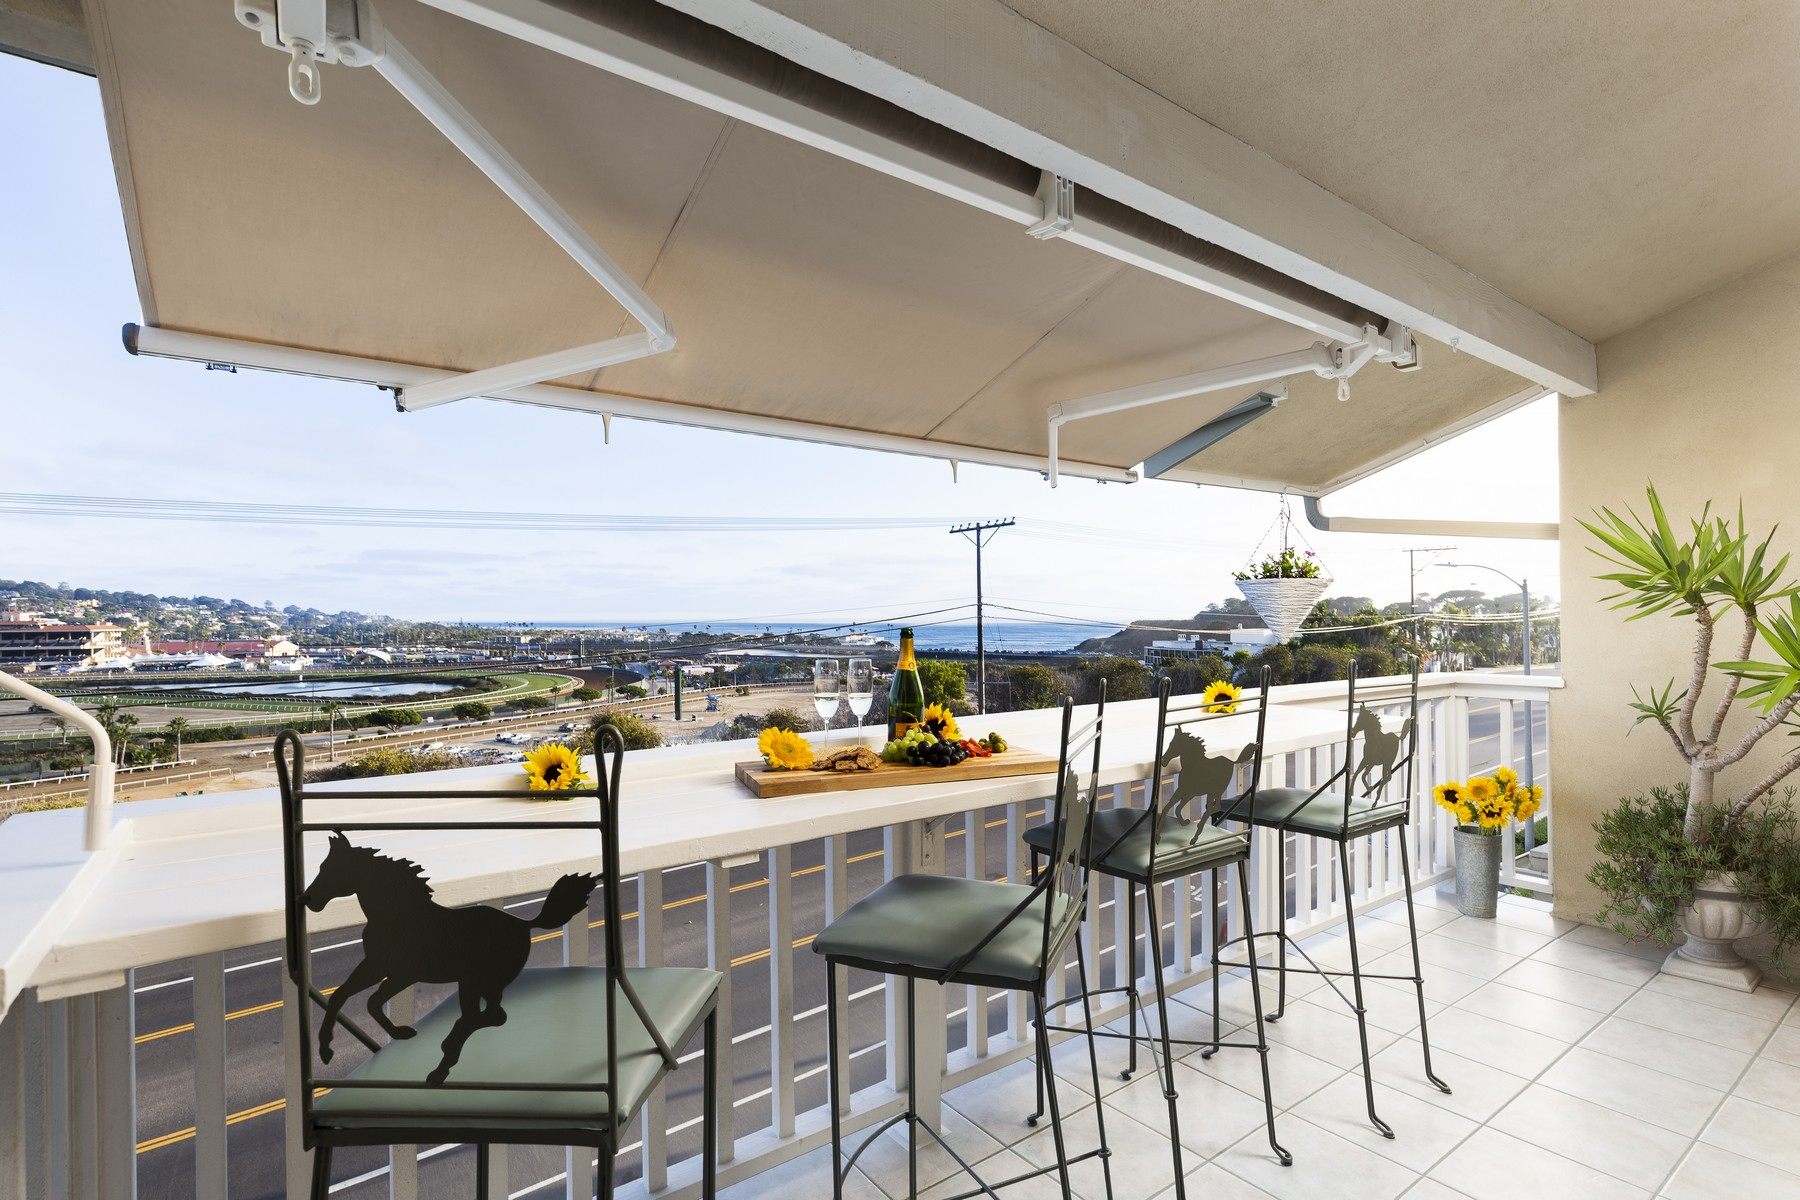 Condominiums for Sale at 227 Turf View Dr Solana Beach, California 92075 United States